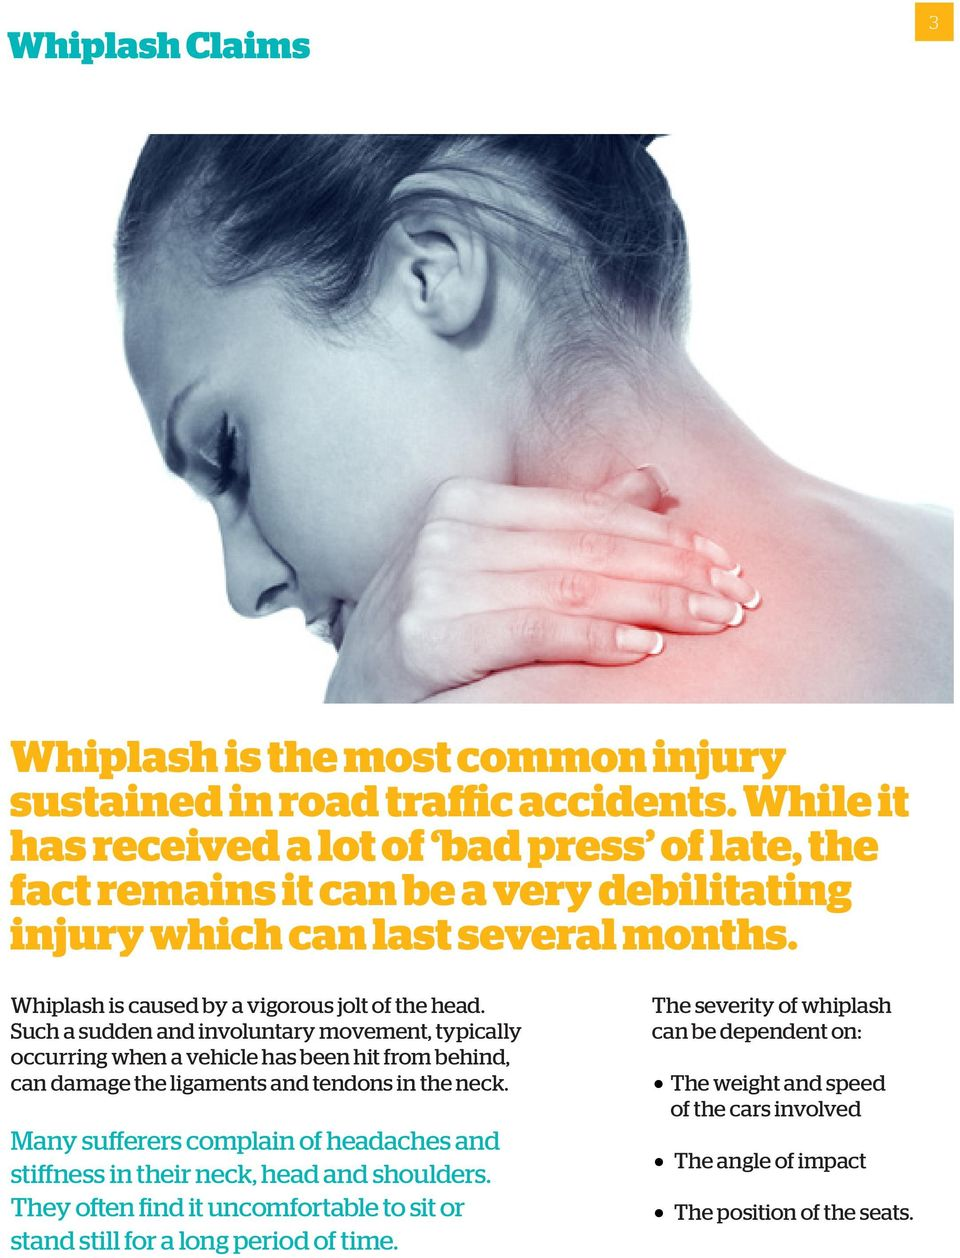 Whiplash is caused by a vigorous jolt of the head.